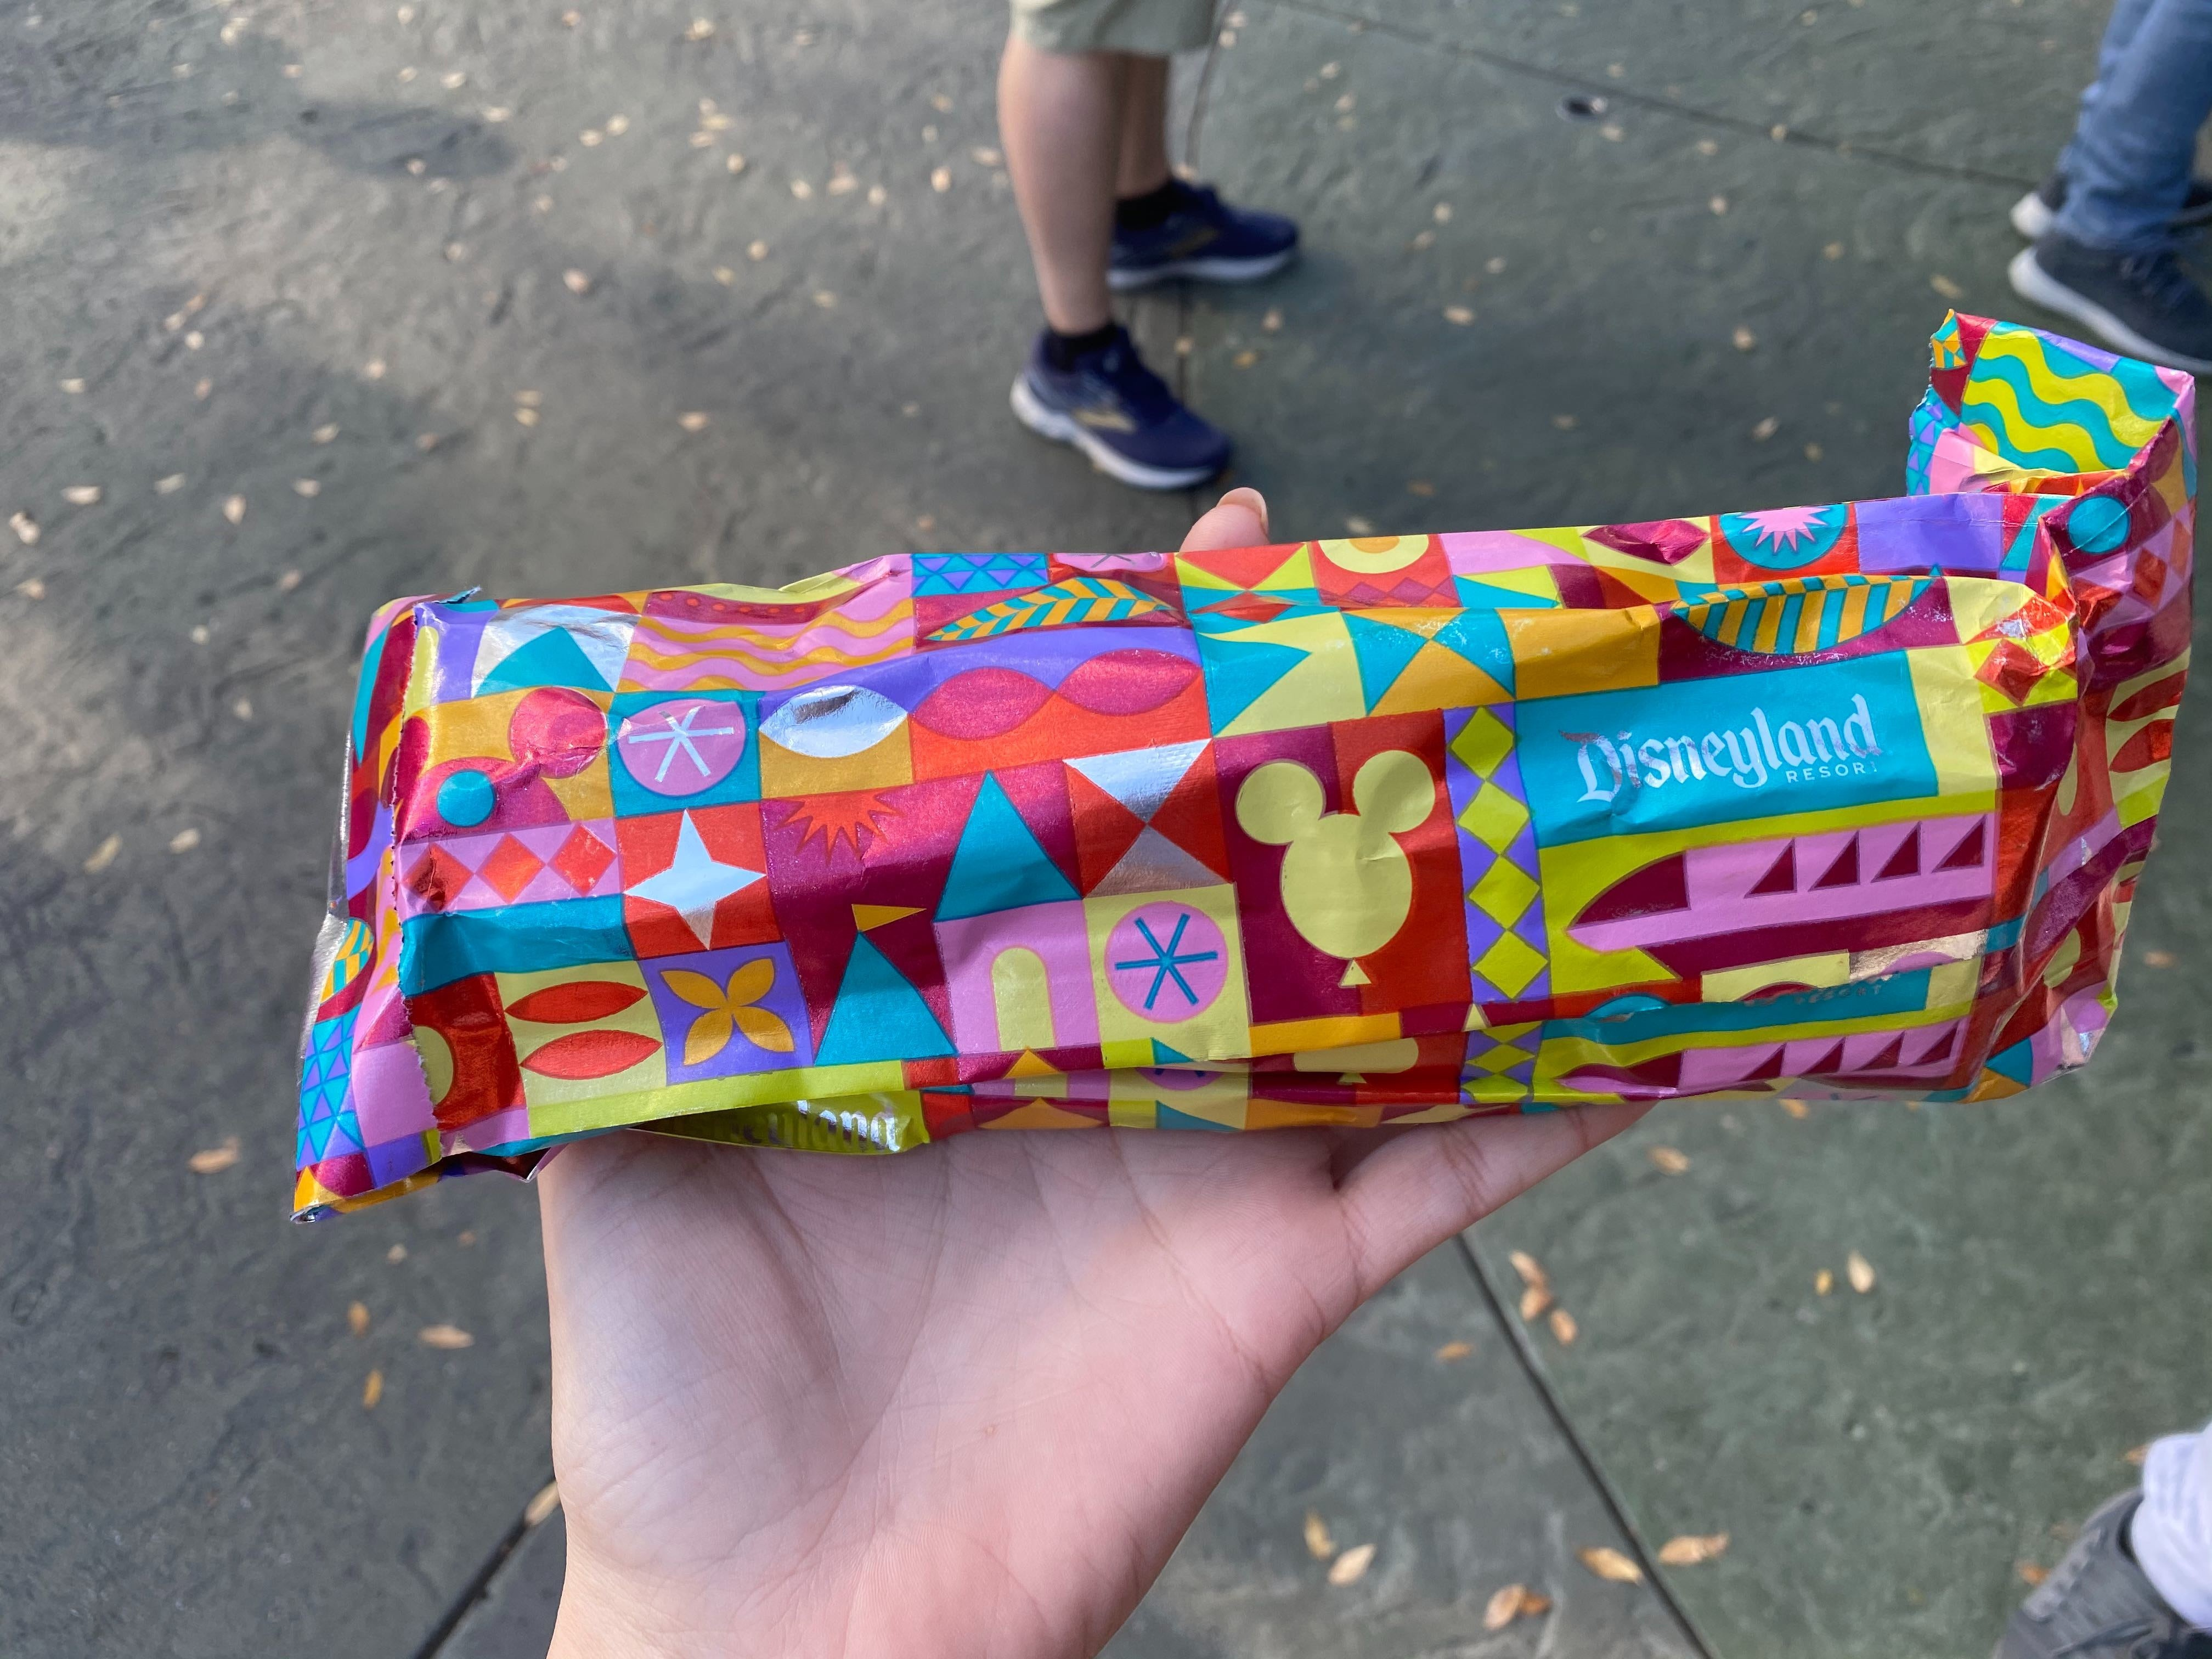 Colorful New Food Wrapping Bring a Pop of Color to Disneyland Snacks